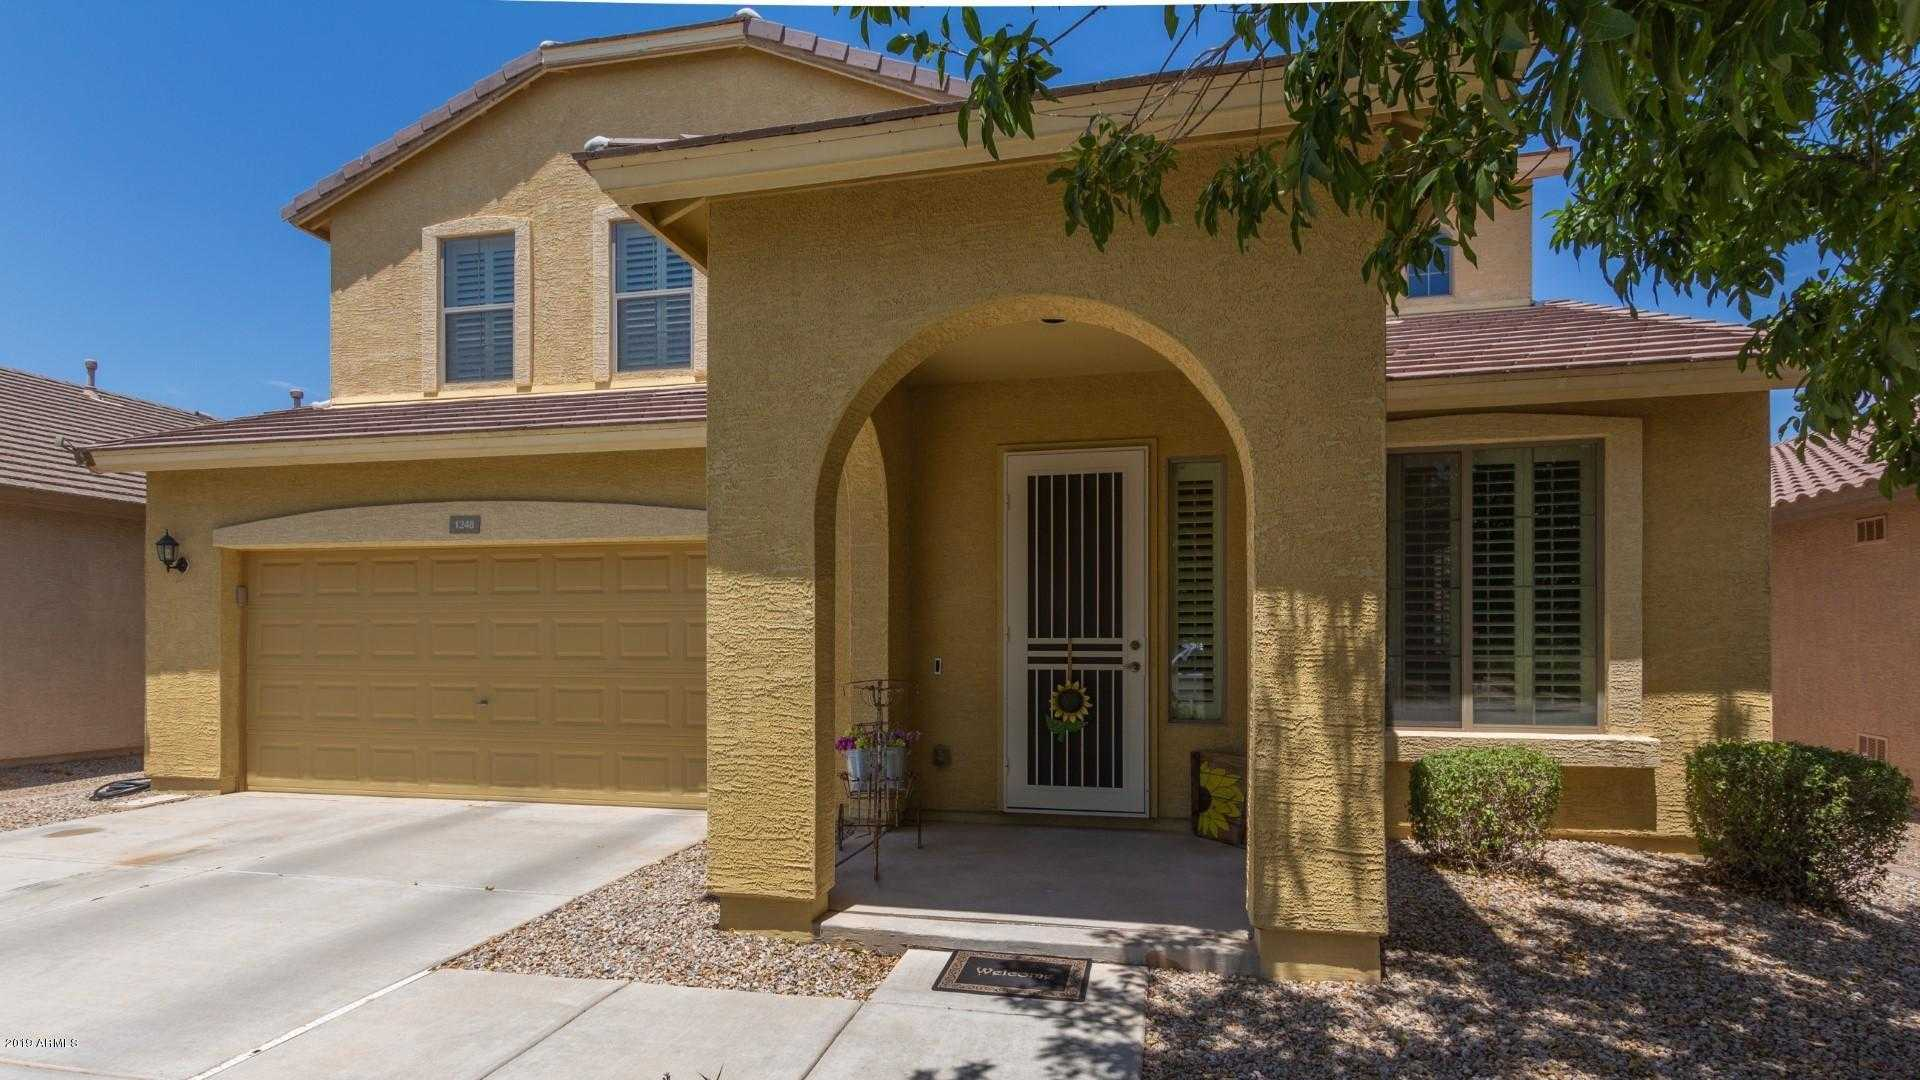 $300,000 - 4Br/3Ba - Home for Sale in Parcel I At Skyline Ranch Phase 2, San Tan Valley